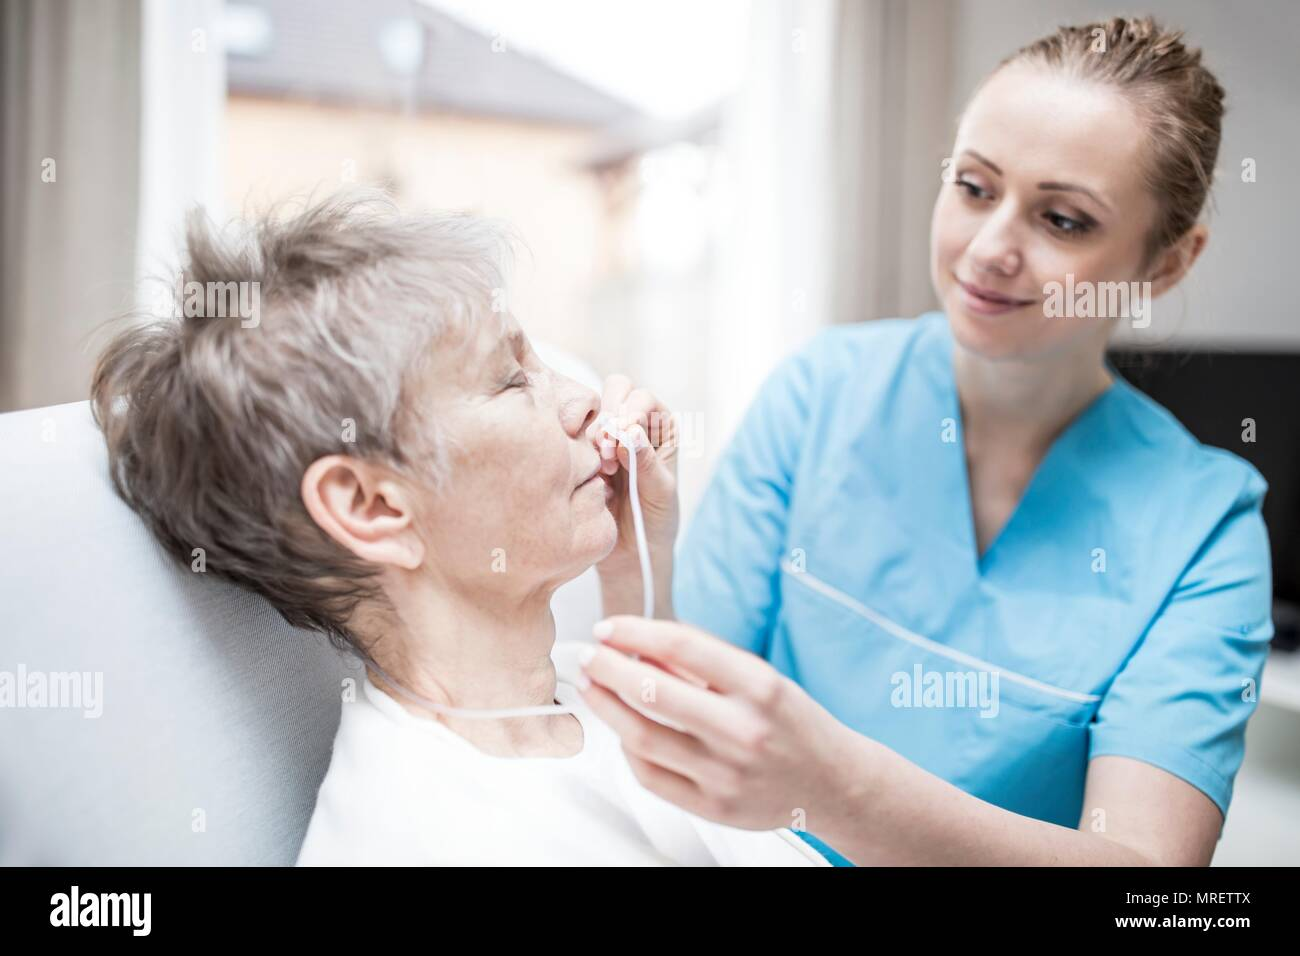 Care worker inserting nasal cannula in senior woman. Stock Photo